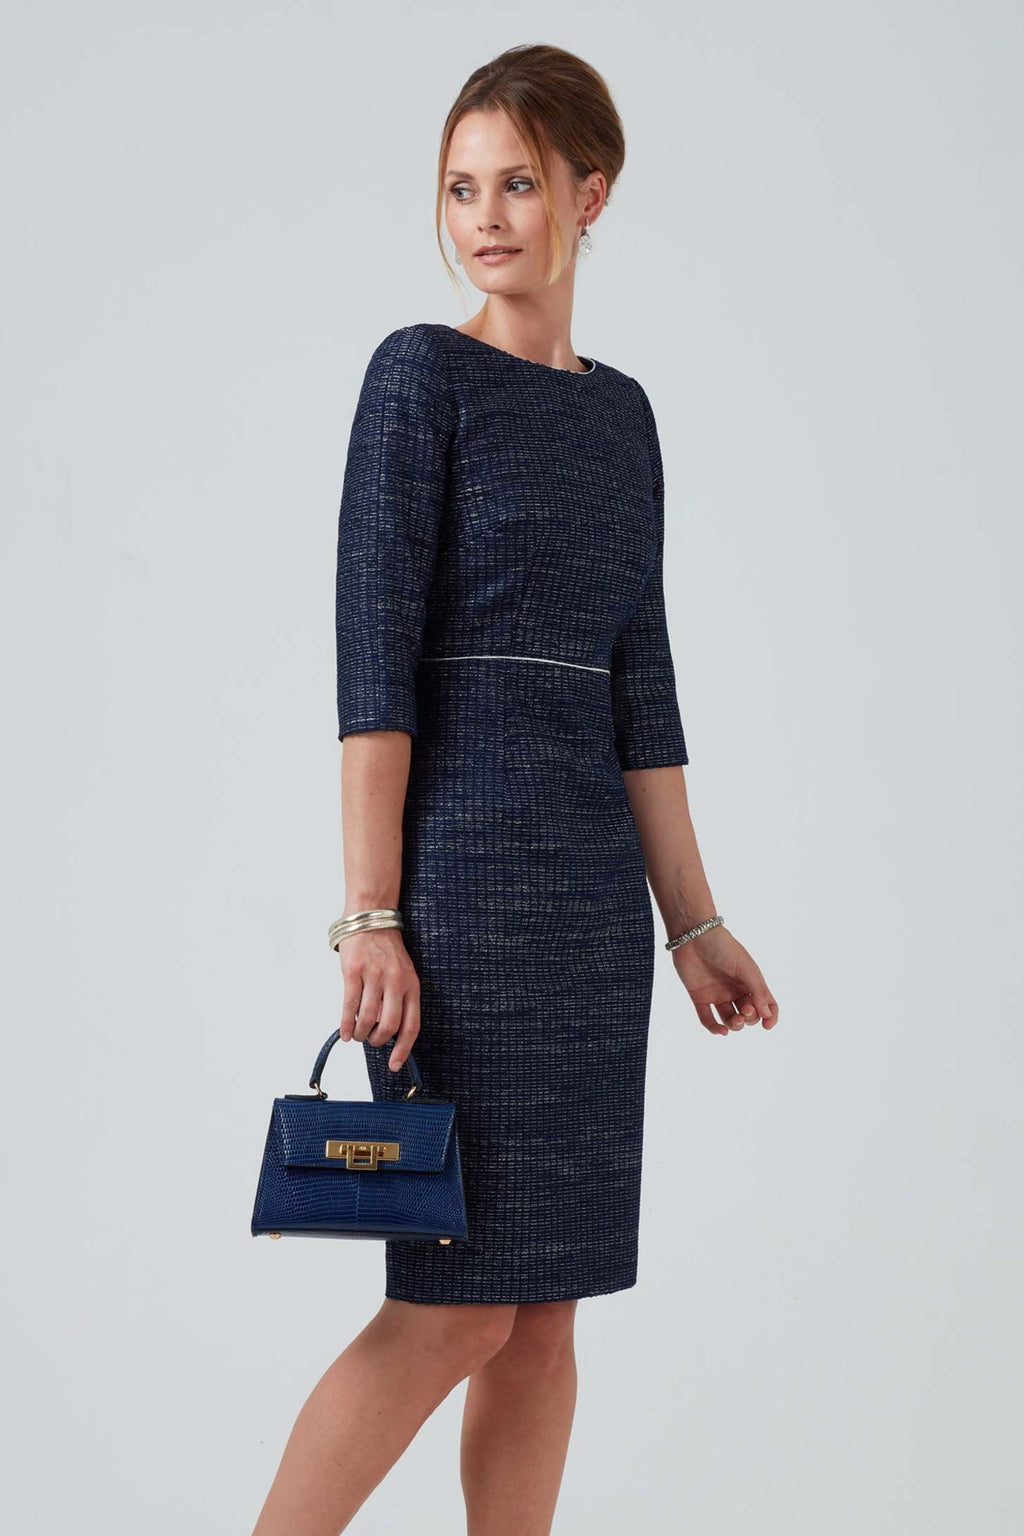 navy dress for special occasions